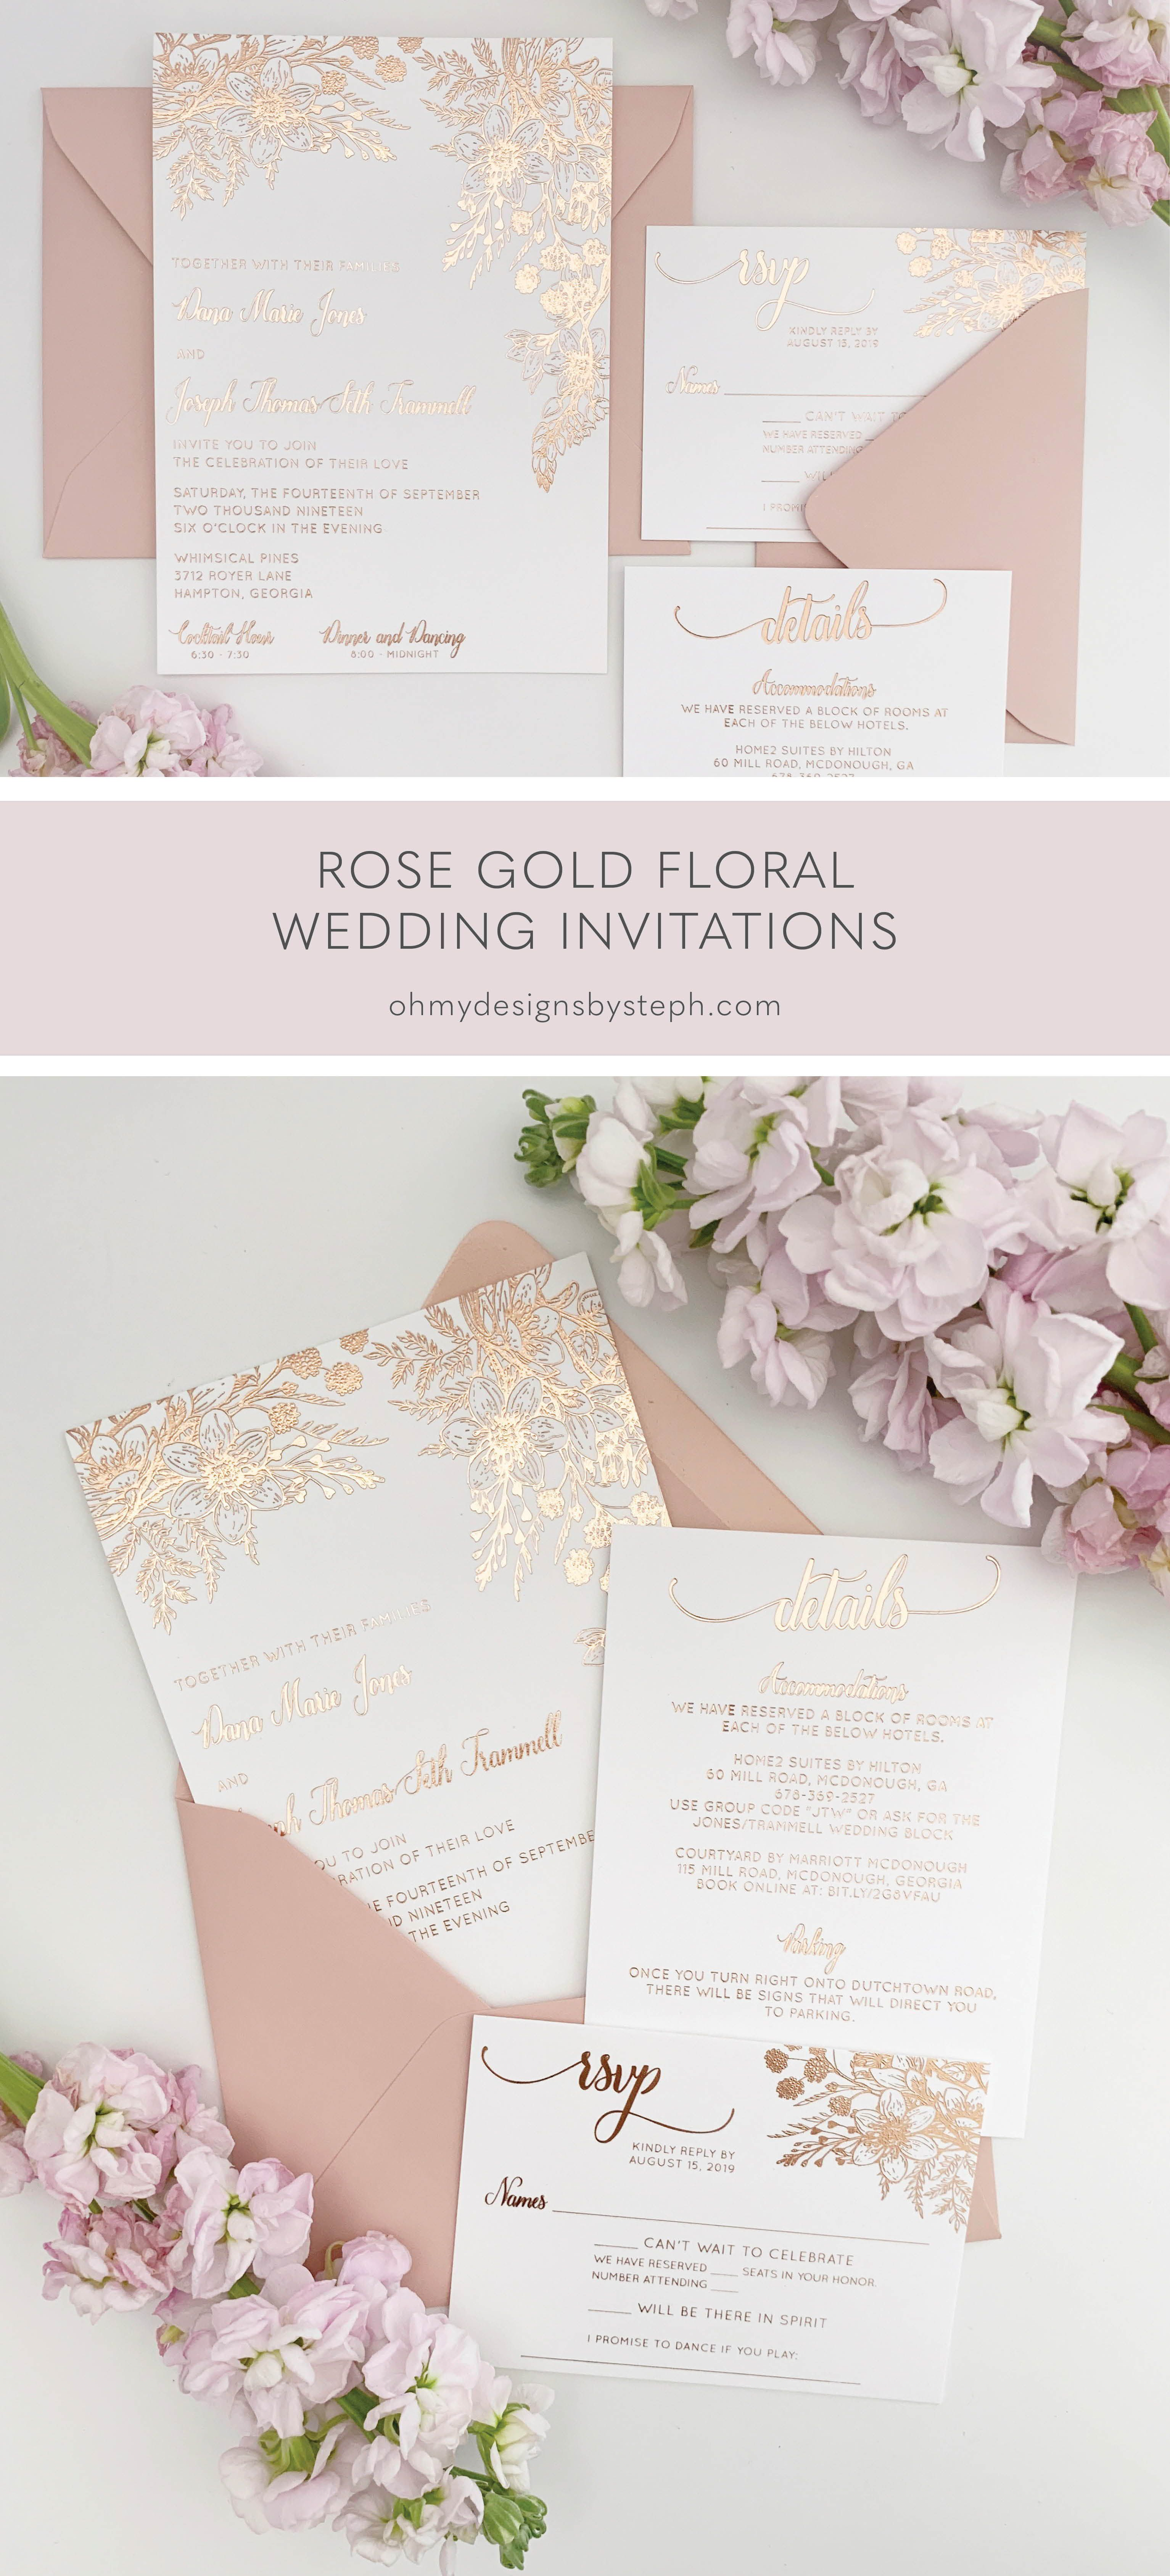 Rose Gold Wedding Invitations With Foil Florals Oh My Designs By Steph In 2021 Rose Gold Wedding Invitations Gold Wedding Invitations Wedding Invitation Trends